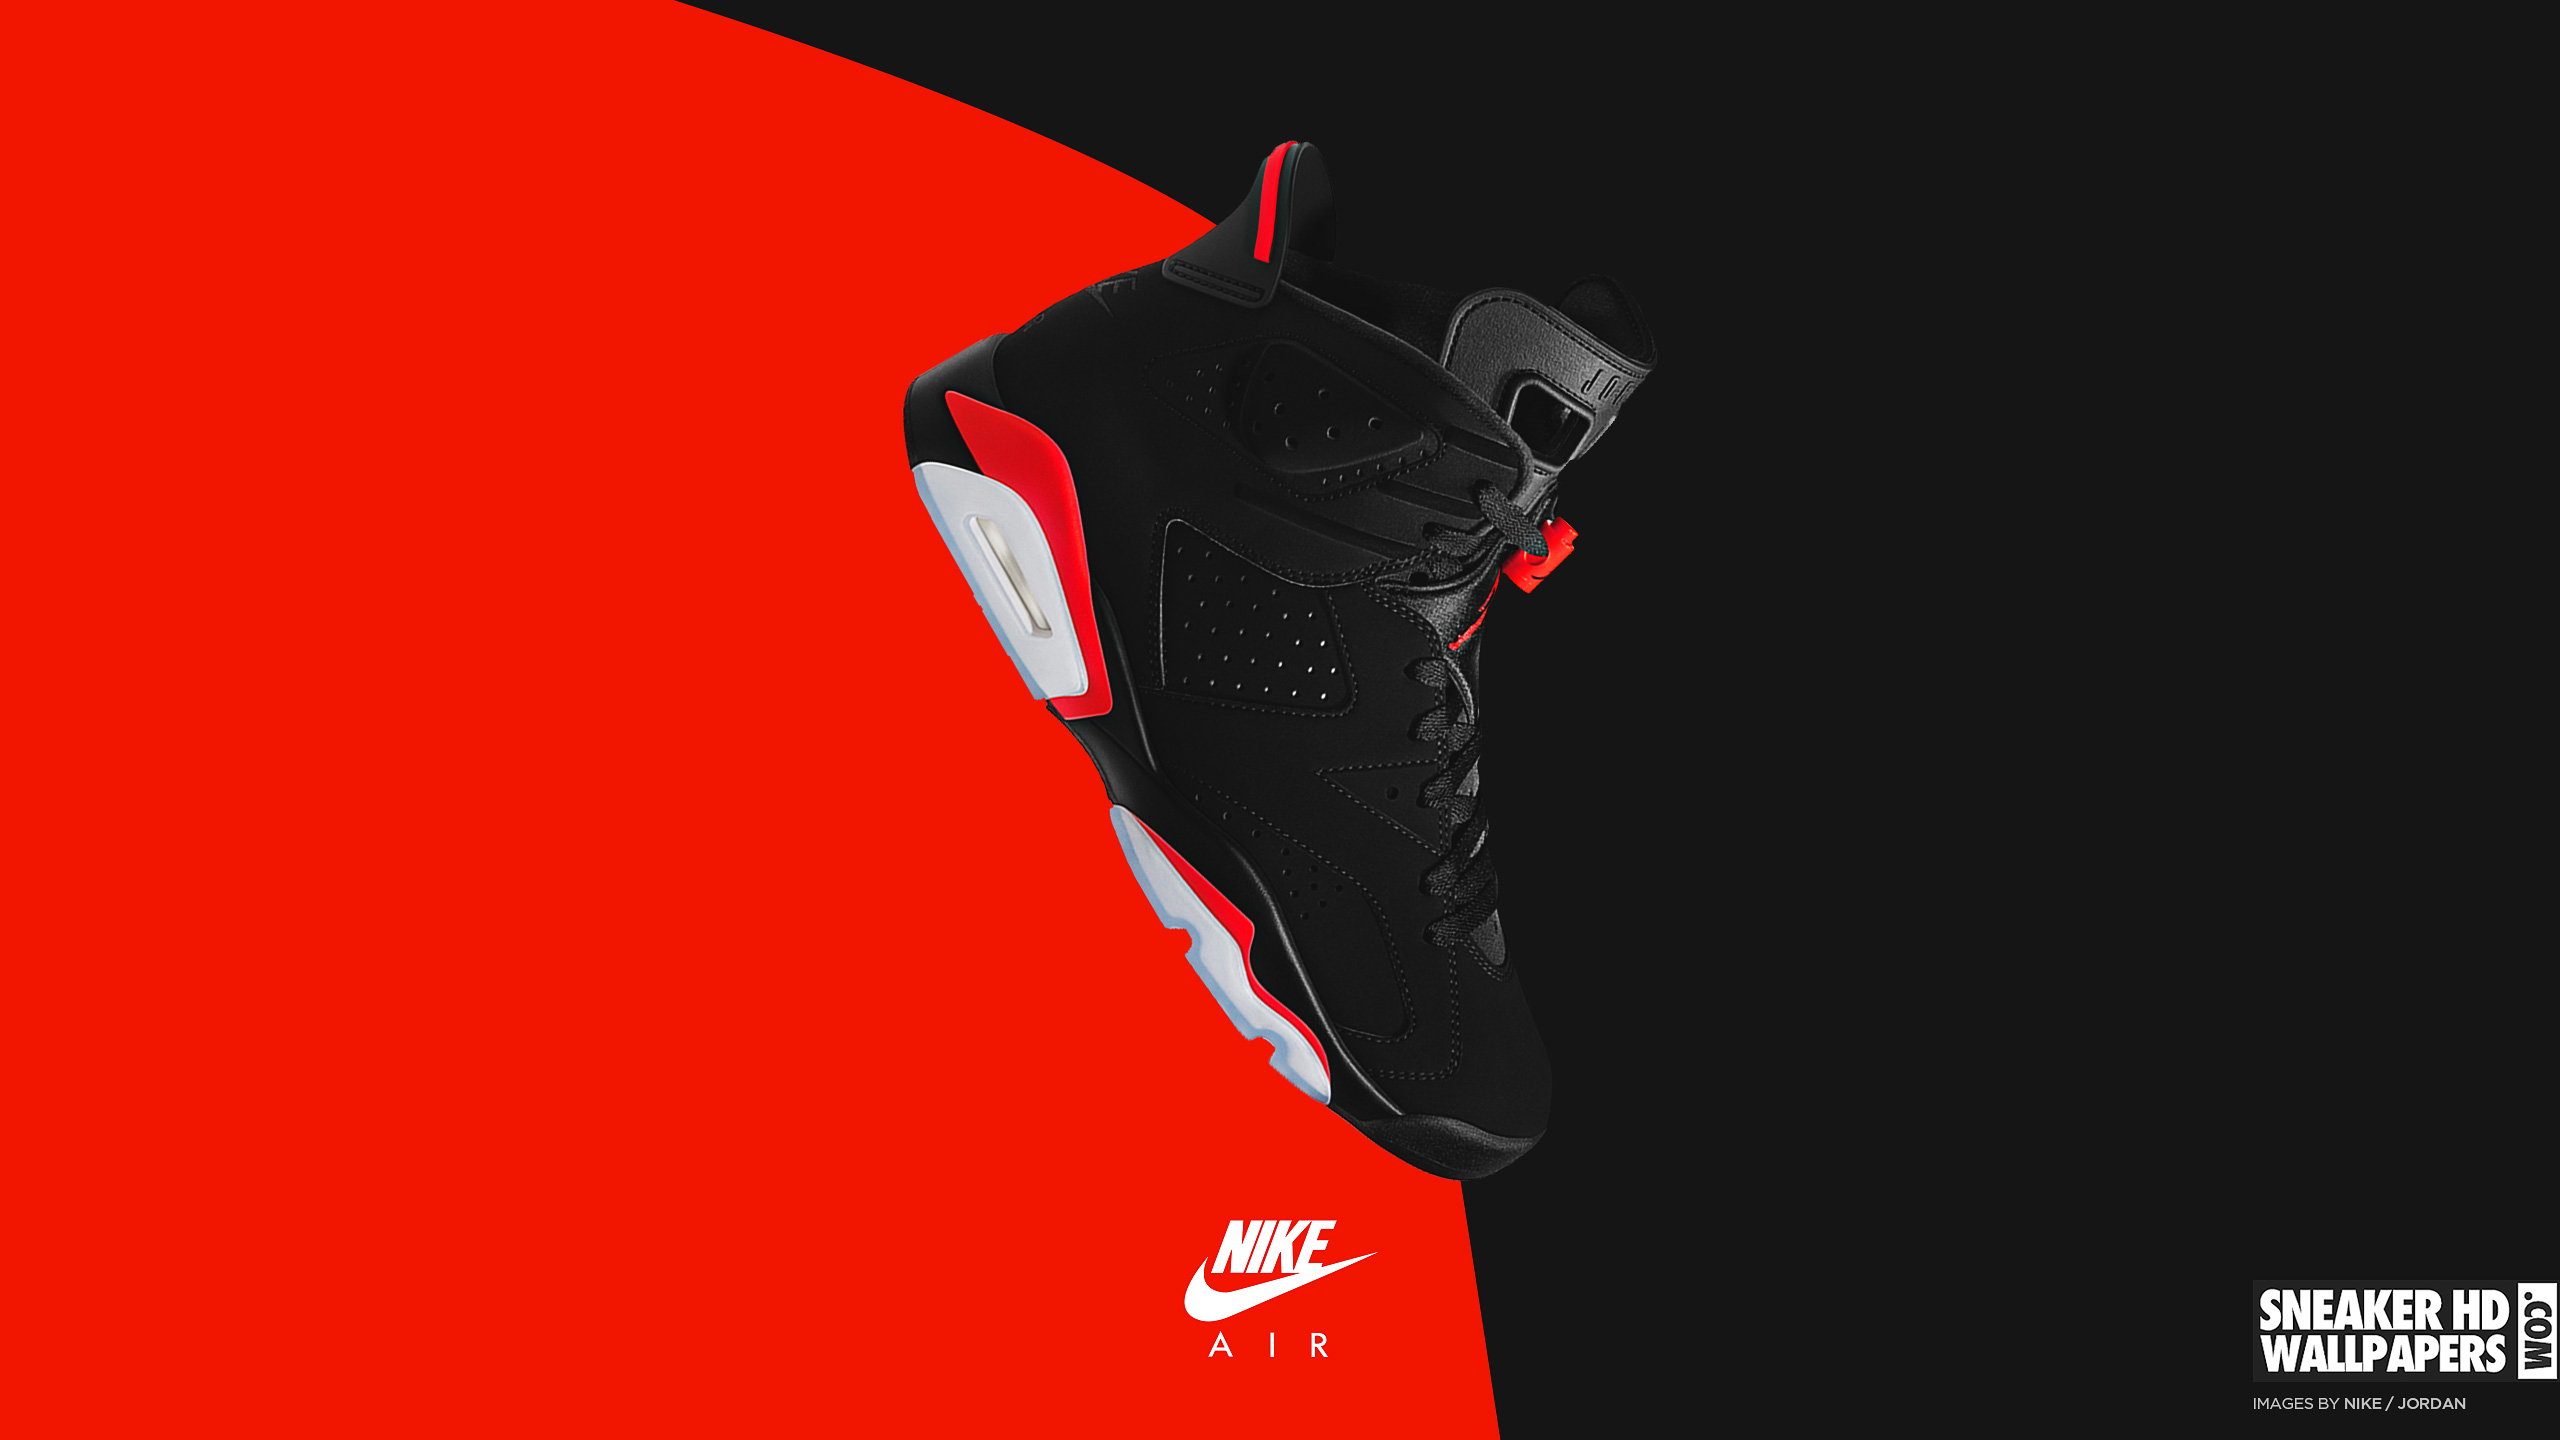 36f875e4a449c SneakerHDWallpaperscom Your favorite sneakers in HD and mobile 2560x1440